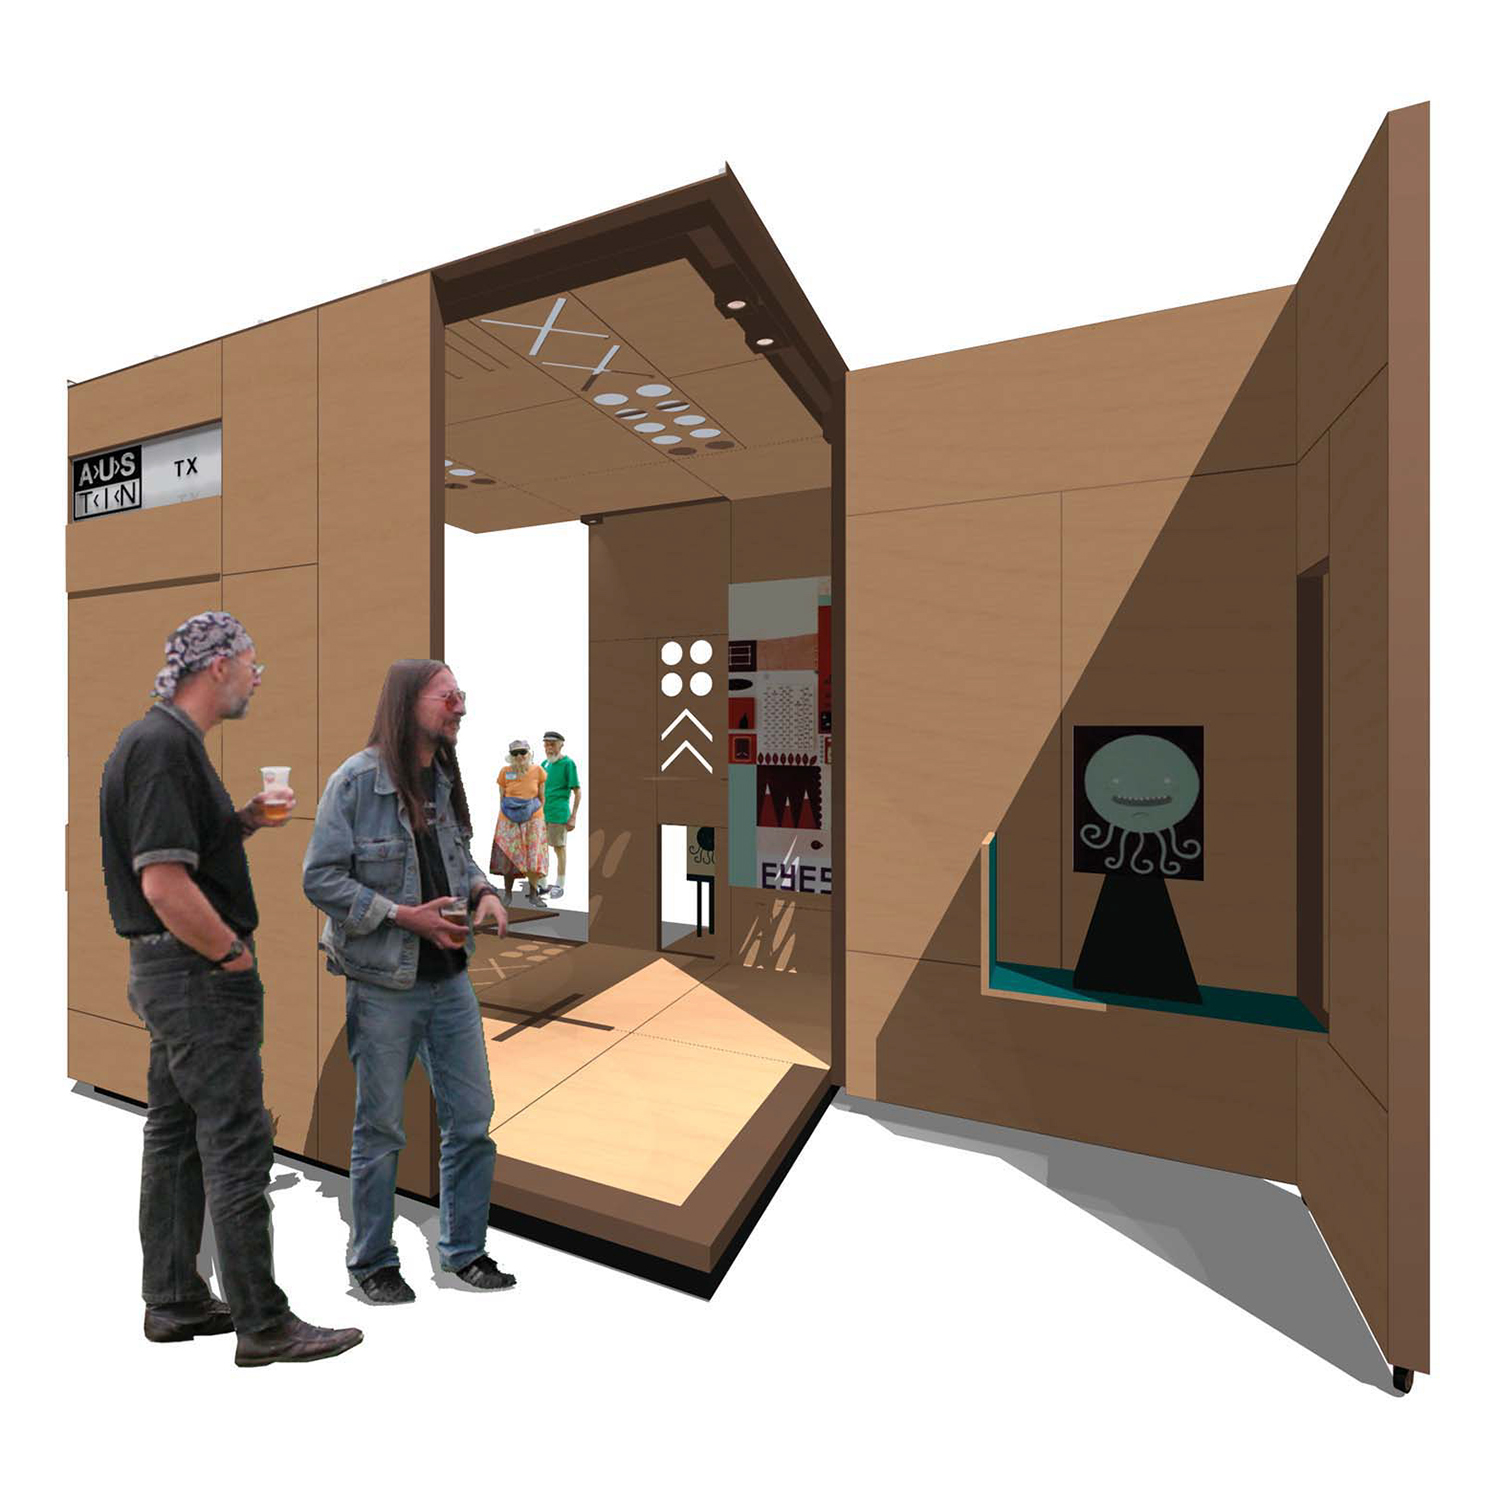 Temporary Outdoor Gallery Space  design competition, Austin